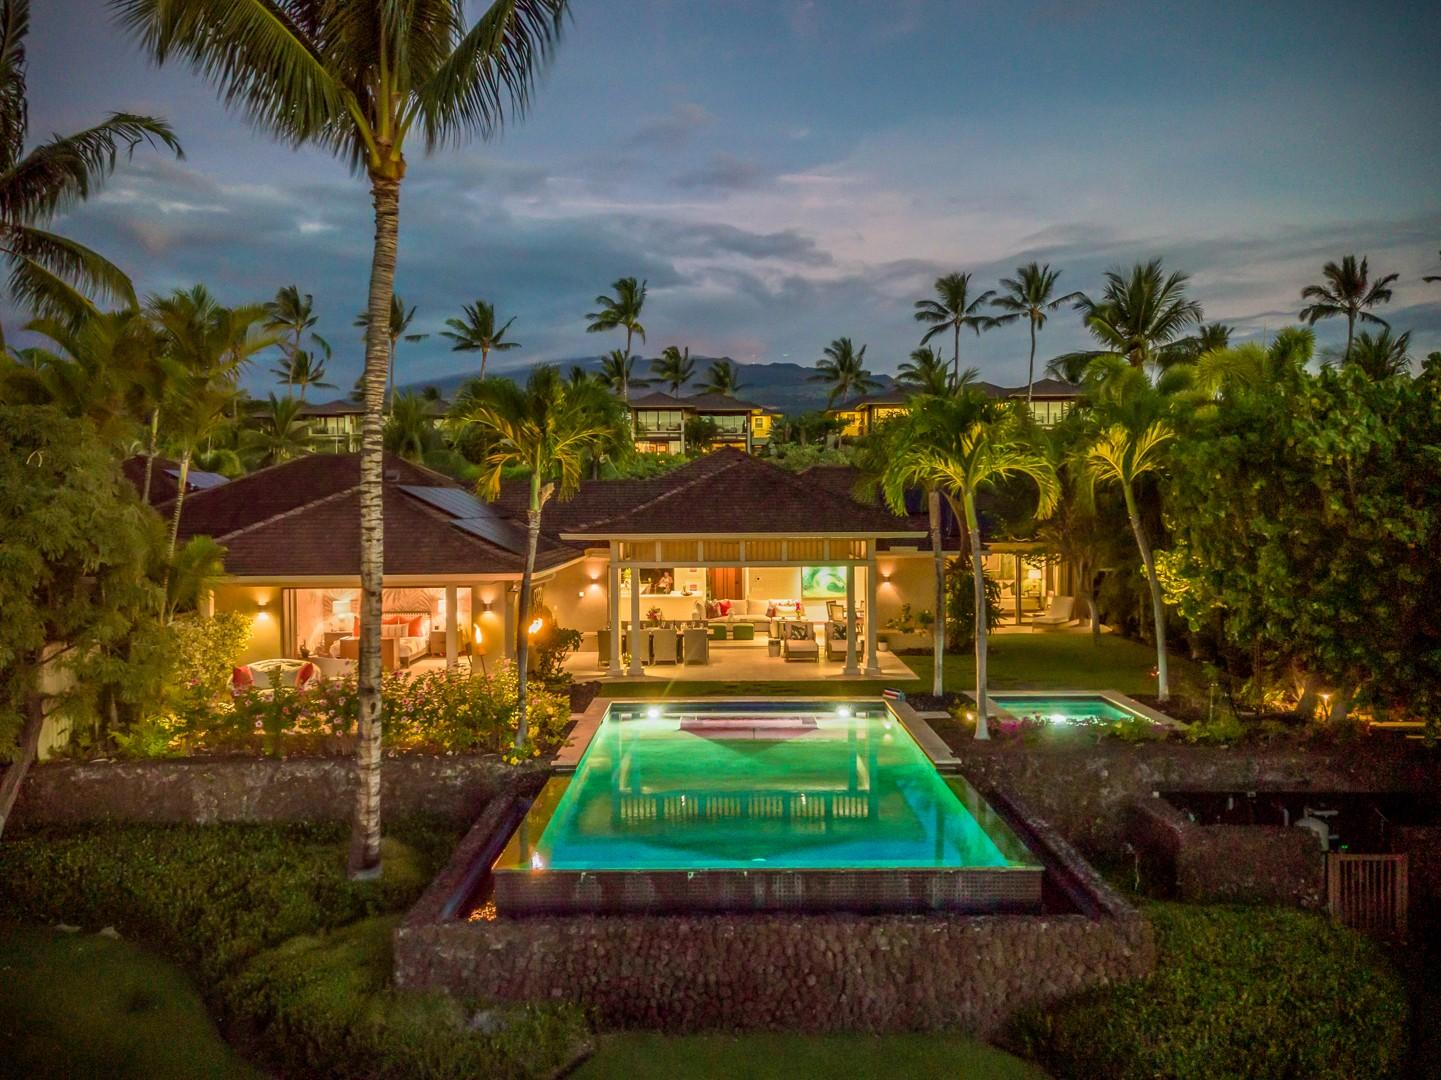 Luxury meets serenity, the view from your private pool in paradise.